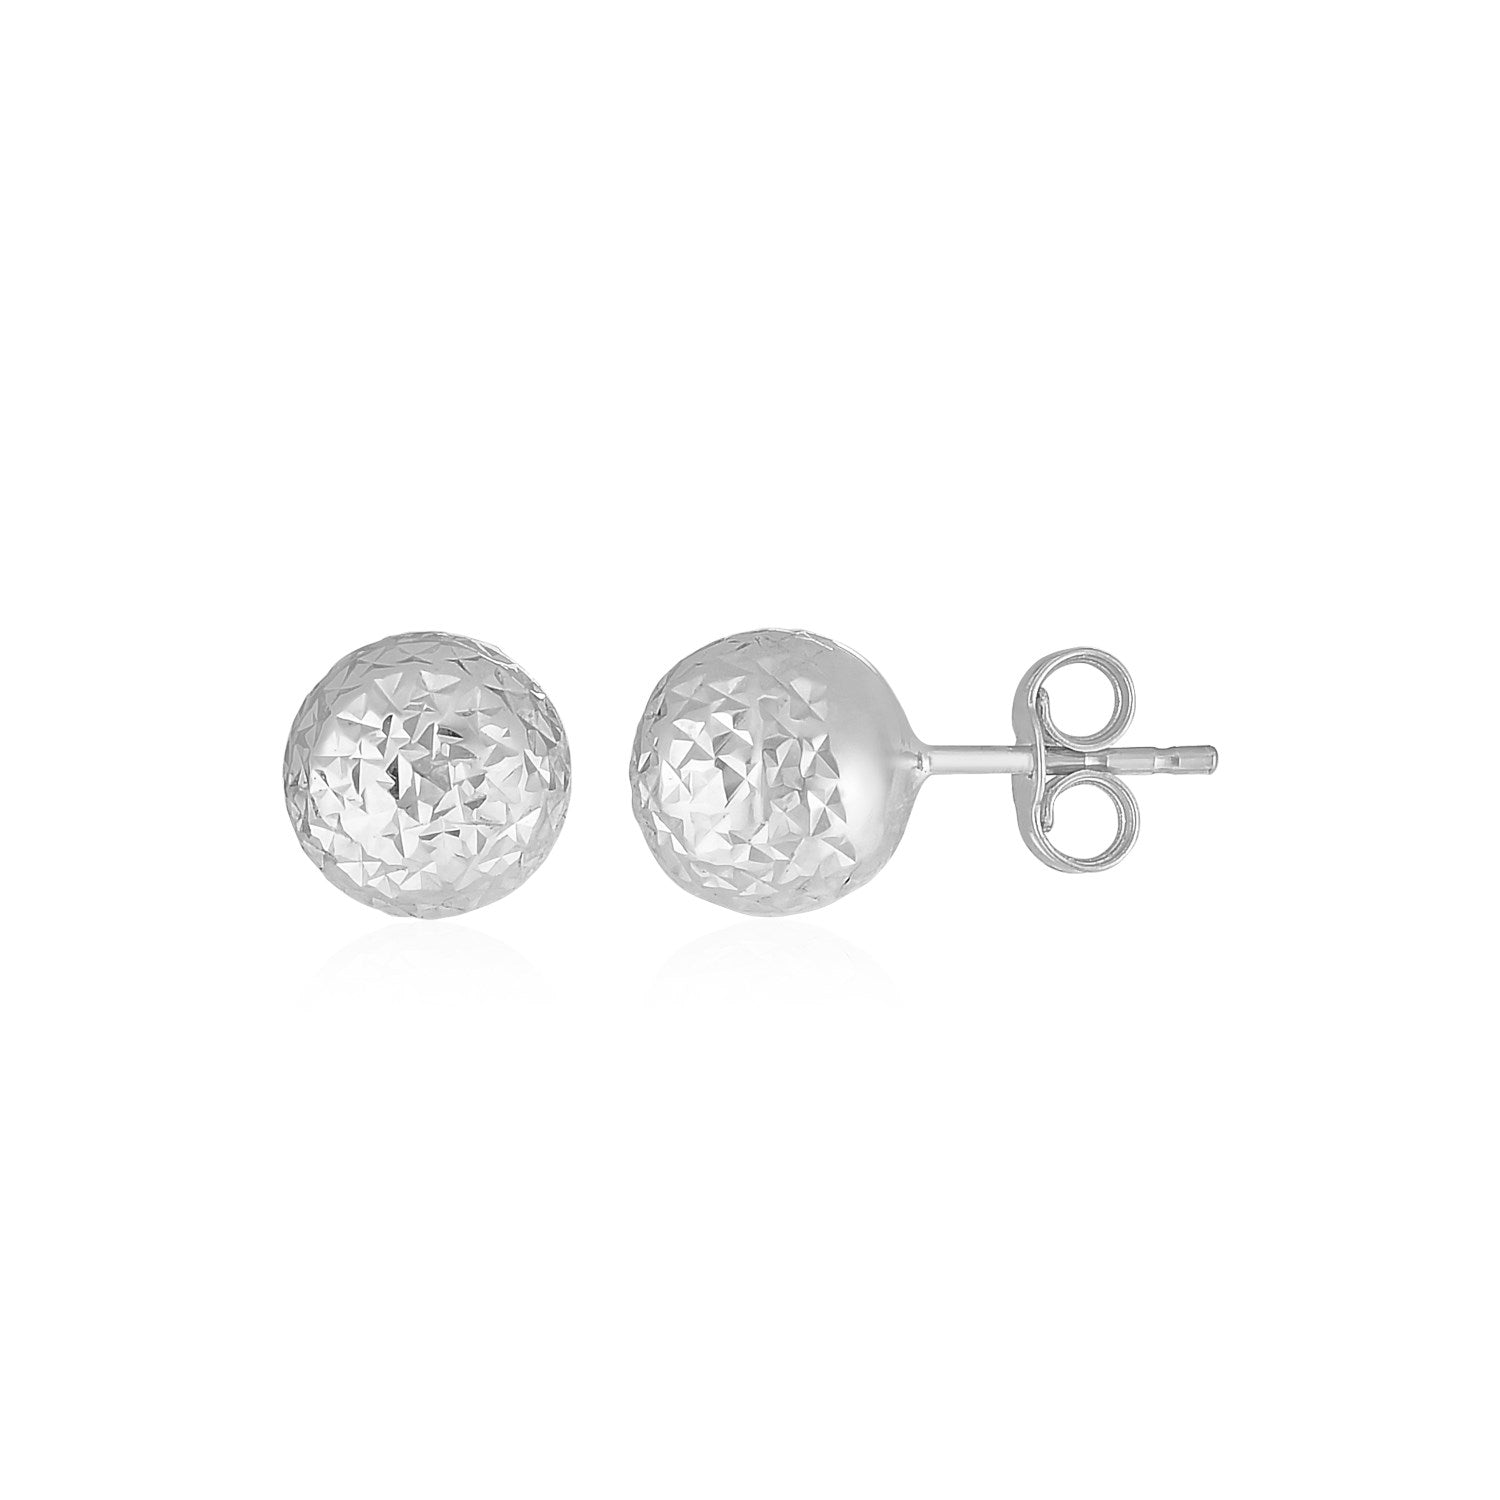 14k White Gold Ball Earrings with Crystal Cut Texture